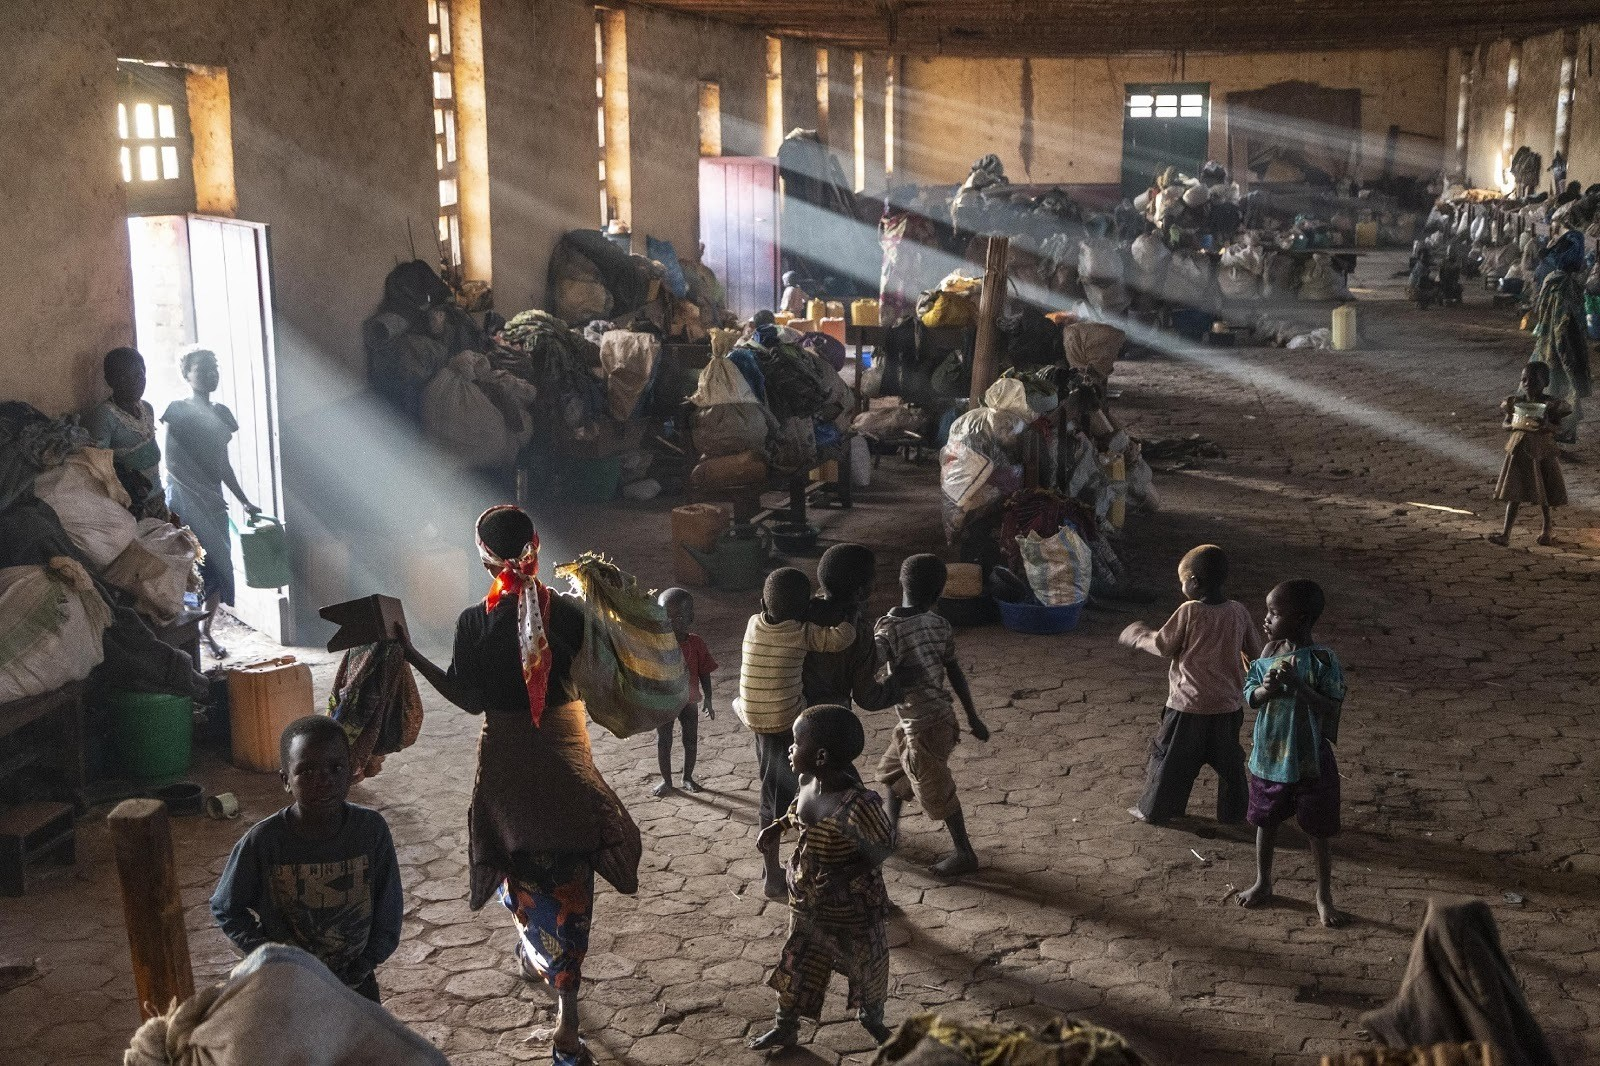 Millions of students are unlikely ever to return to school after the pandemic.